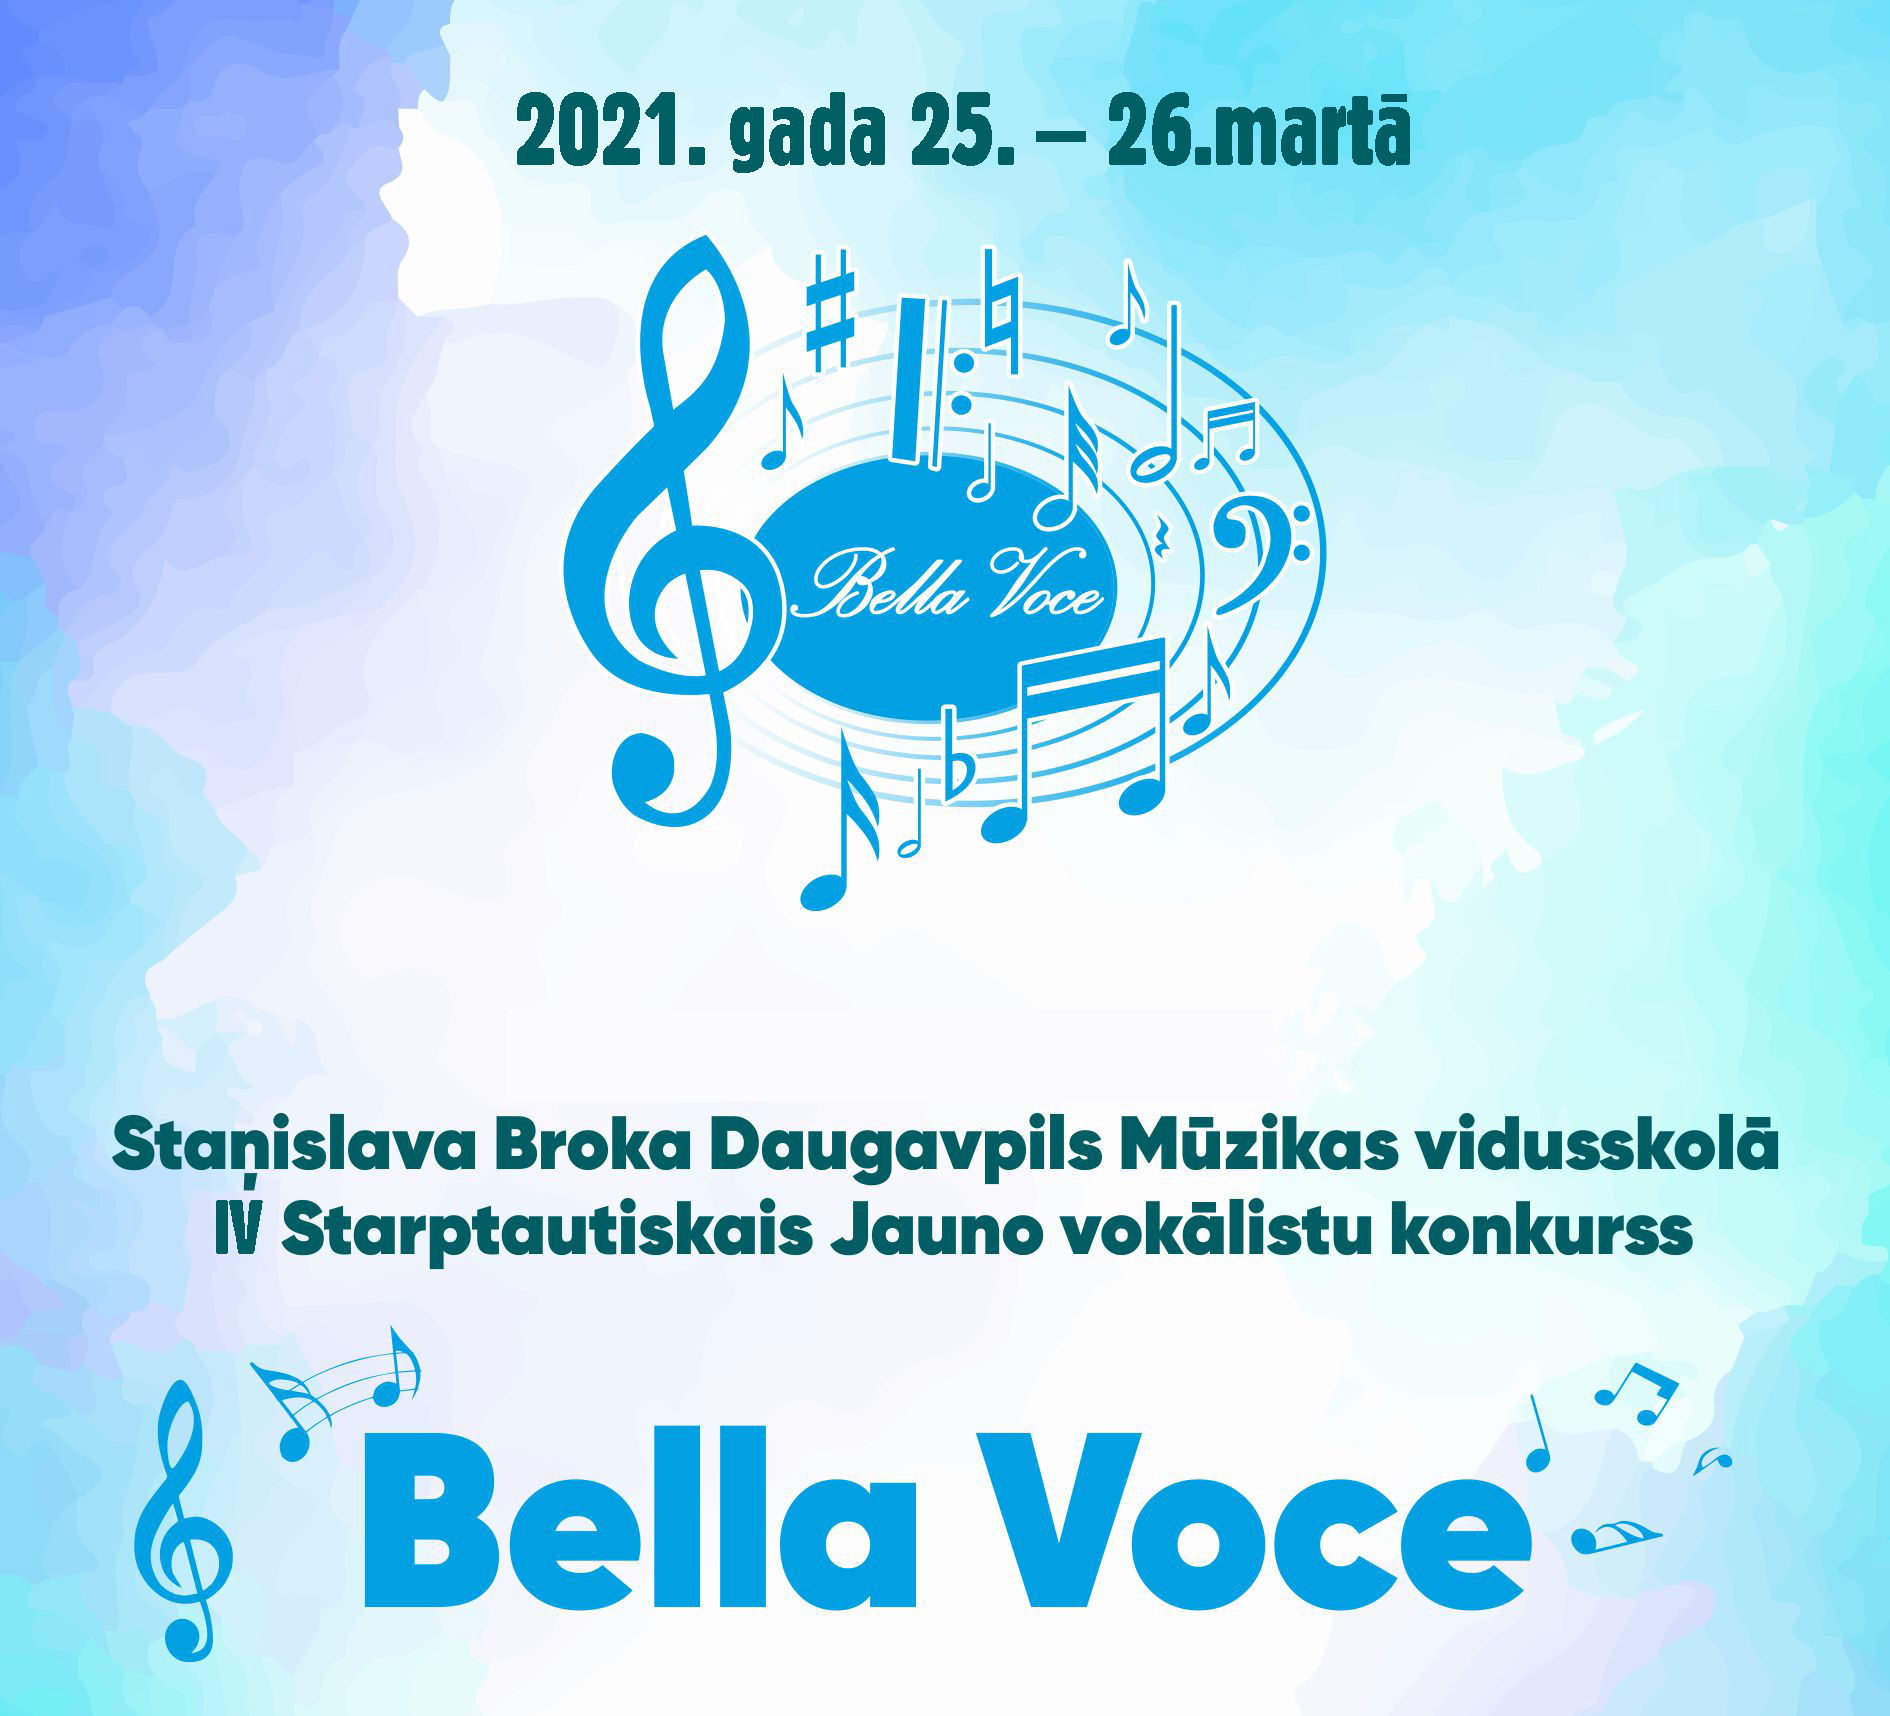 BellaVoce 2021 web